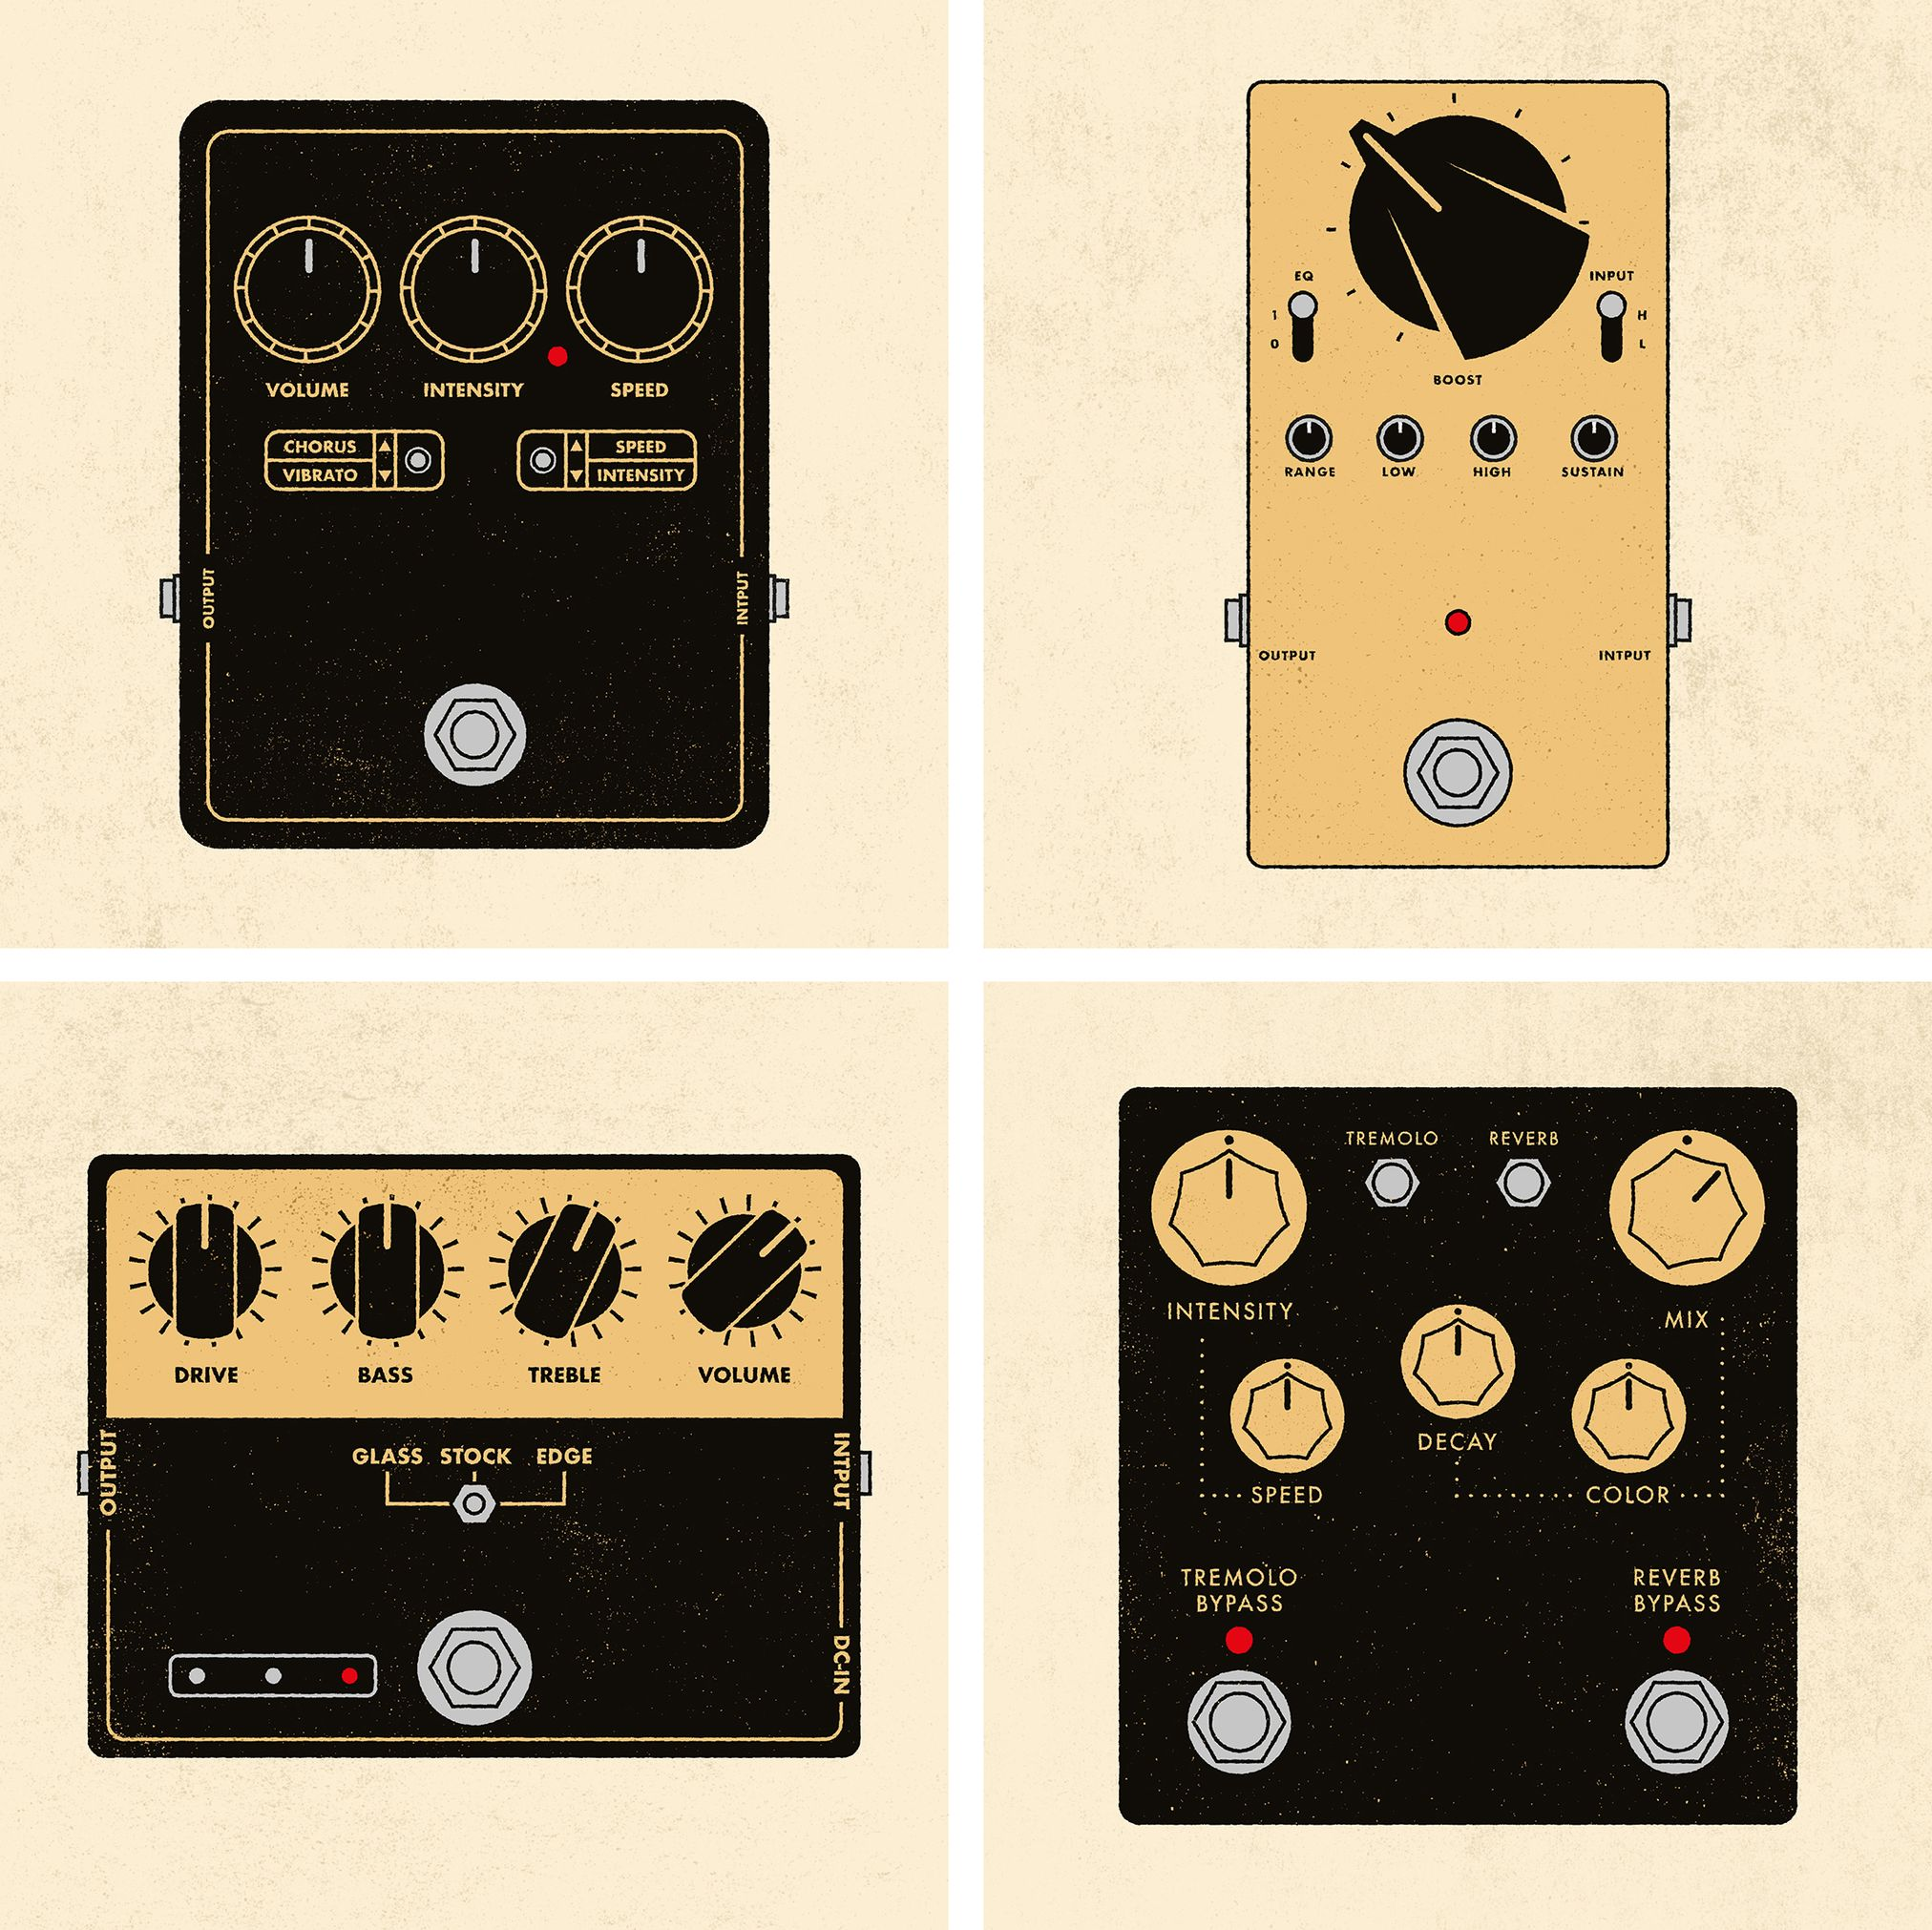 garance-illustration-Personal-project-Guitar-effects-pedals_web